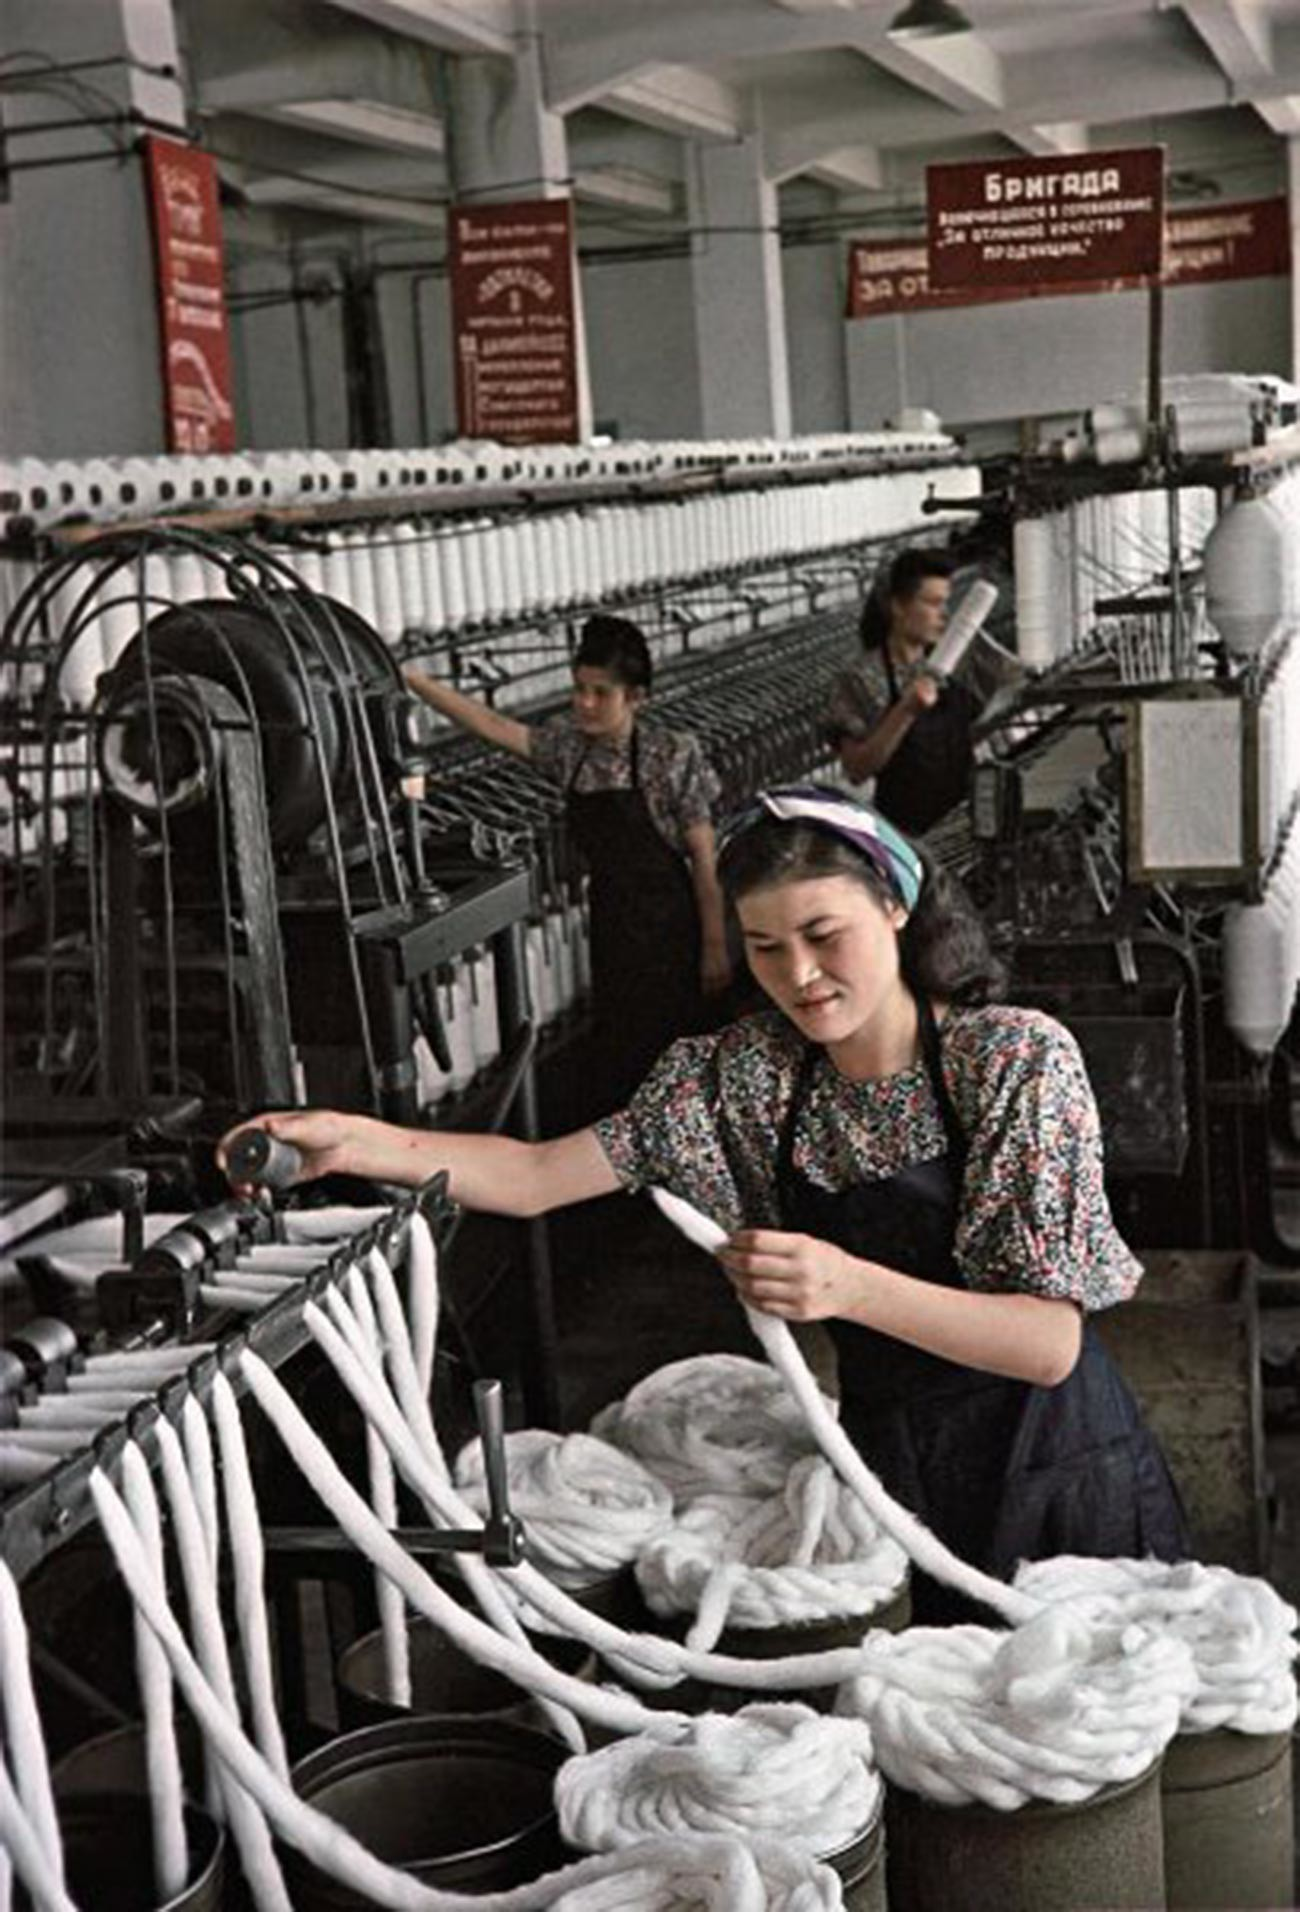 Stakhanovite Maria Nasilbayeva, a worker at the Alma-Ata cotton mill, grew up in an orphanage. Her team fulfills the production plan by 200 percent. From the archive of Ogonyok magazine; 1950.